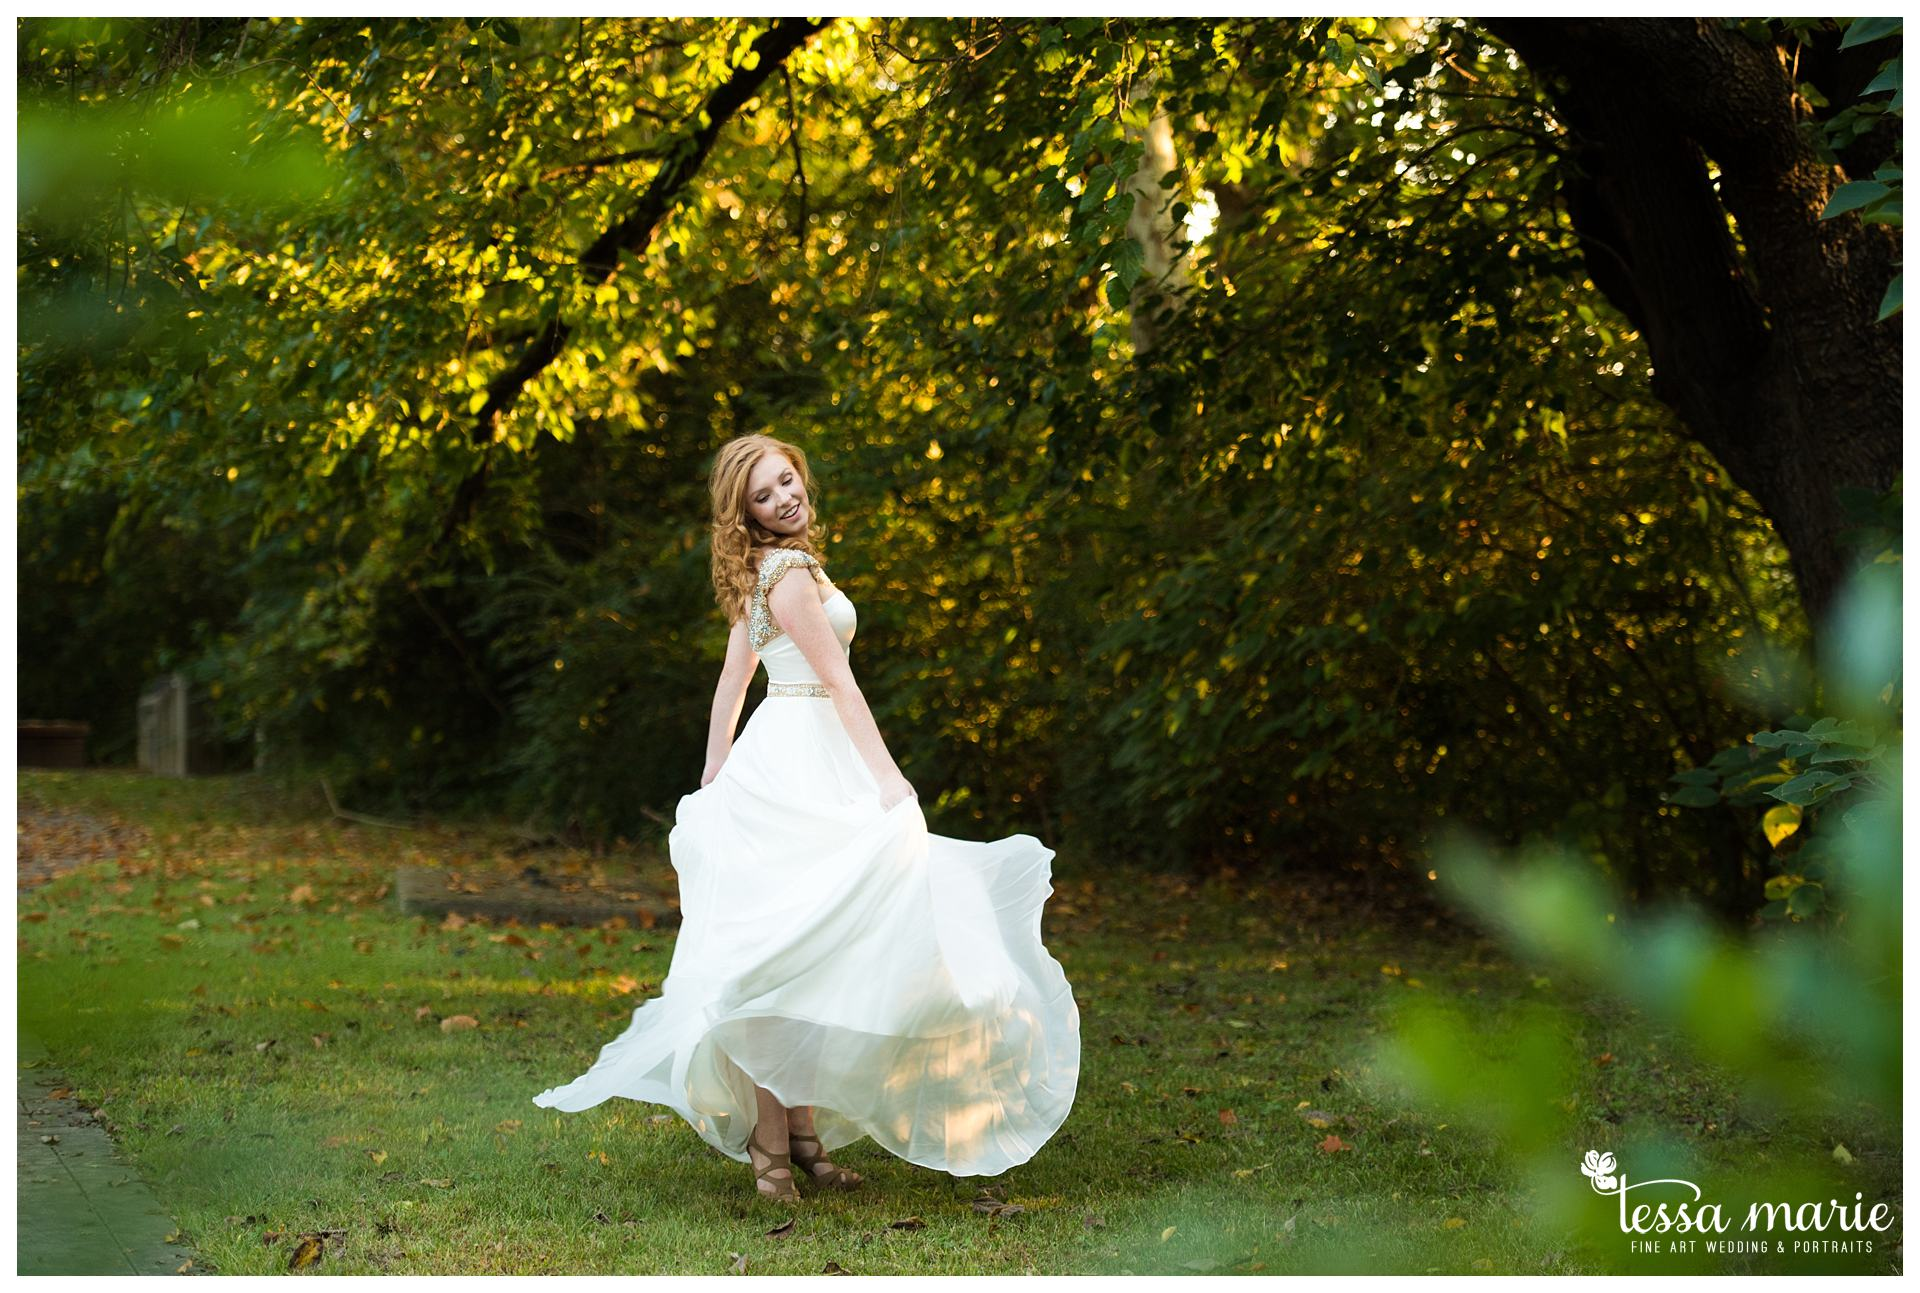 tessa_marie_weddings_legacy_story_focused_wedding_pictures_atlanta_wedding_photographer_family_pictures_portrait_Fine_art_memories_mothers_day_spring_moments_0335